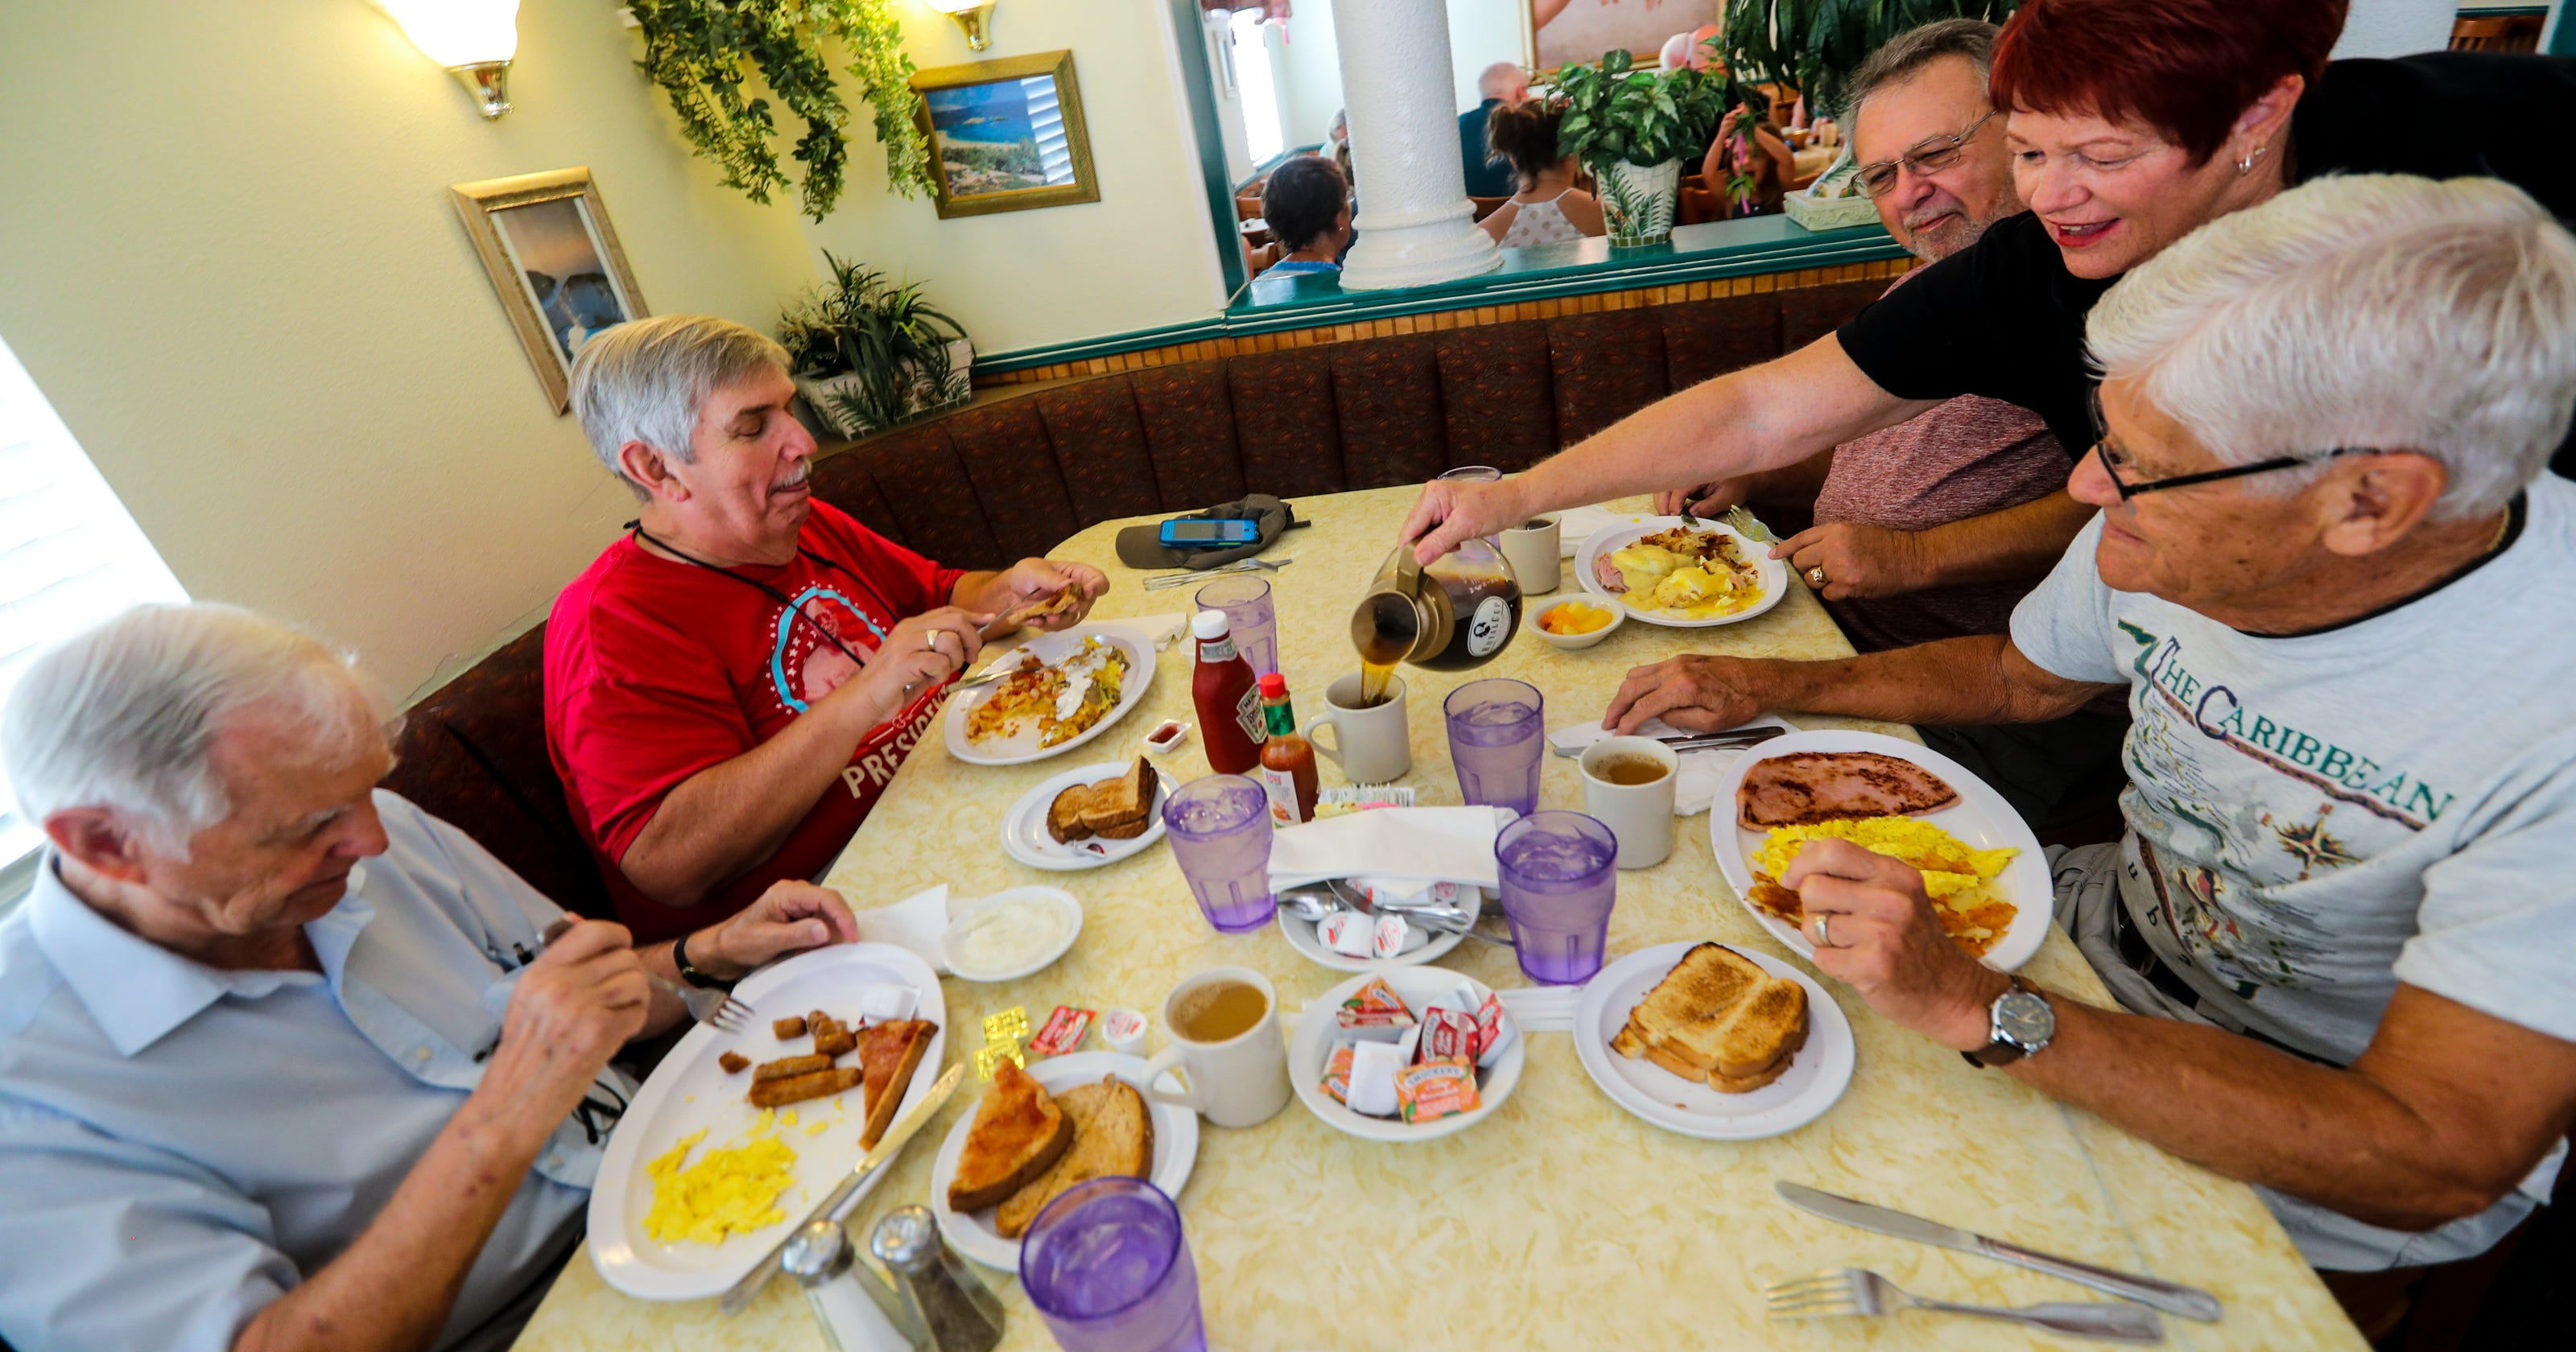 ROMEOs, Retired Old Men Eating Out, find health, happiness